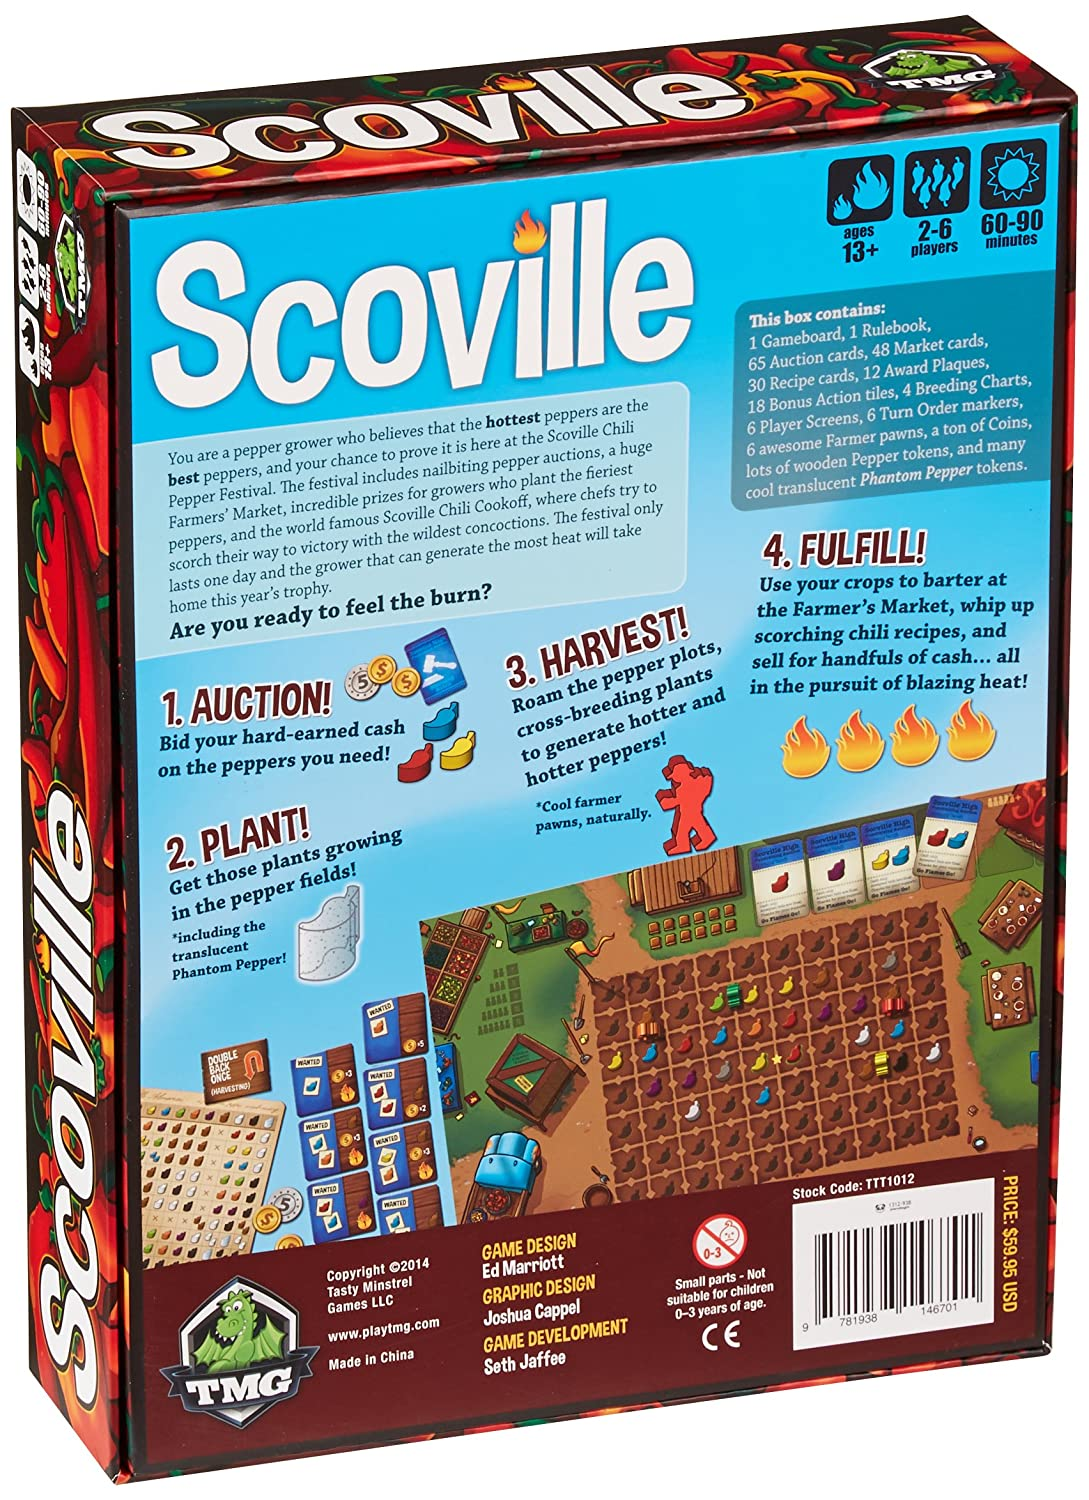 Amazon.com: Tasty Minstrel Games Scoville Board Game: Toys & Games